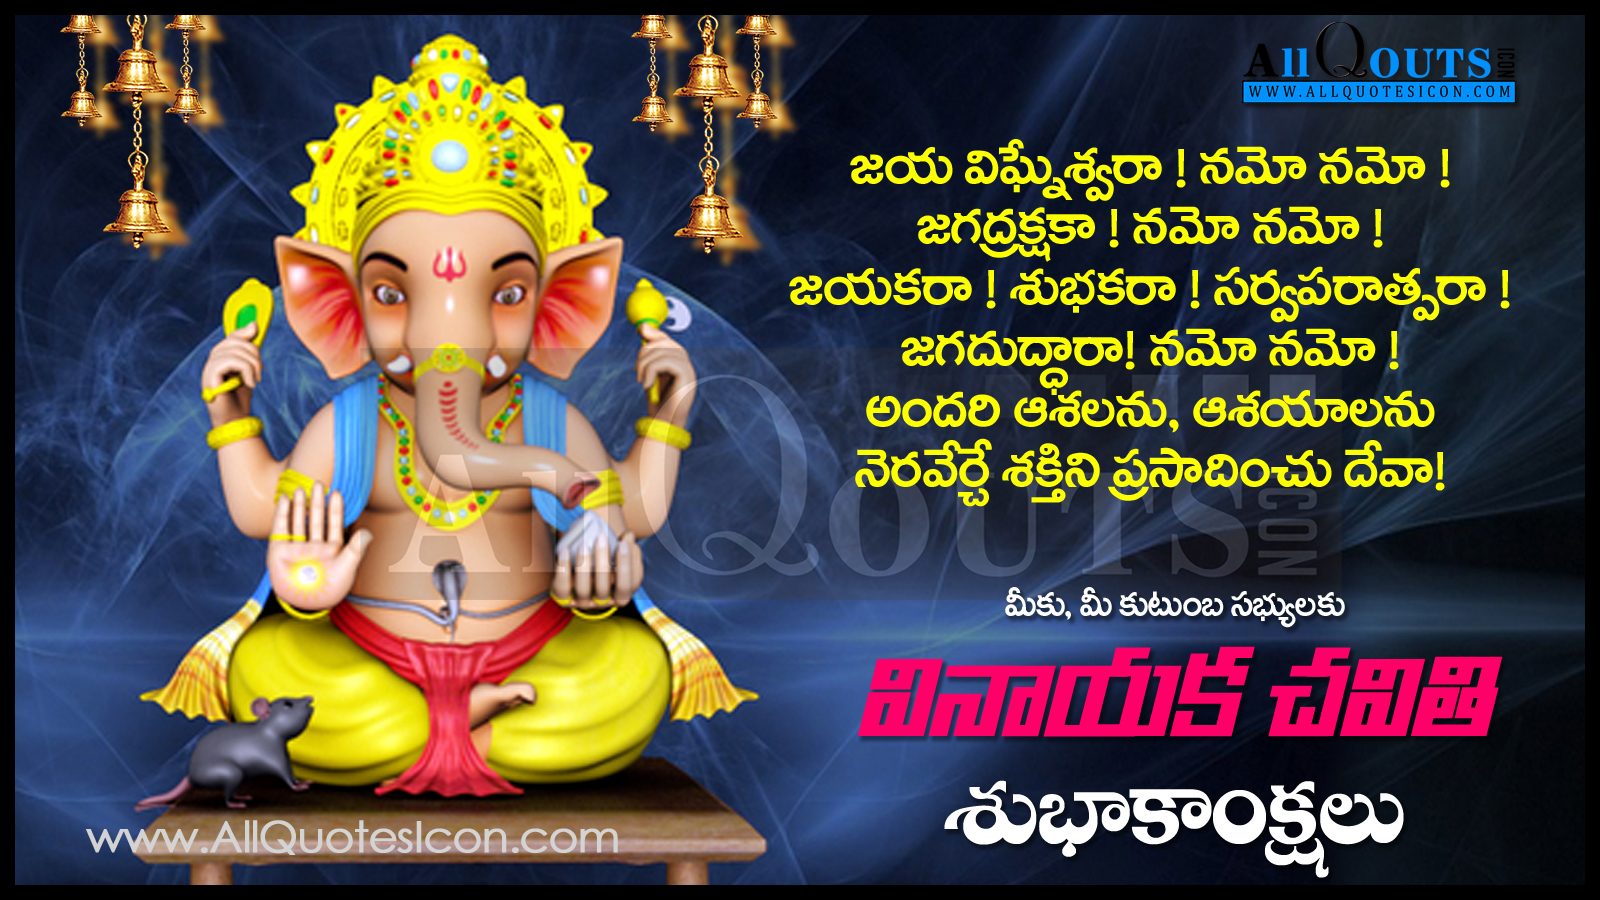 Happy Vinayaka Chavithi Images And Quotations In Telugu Wallpapers